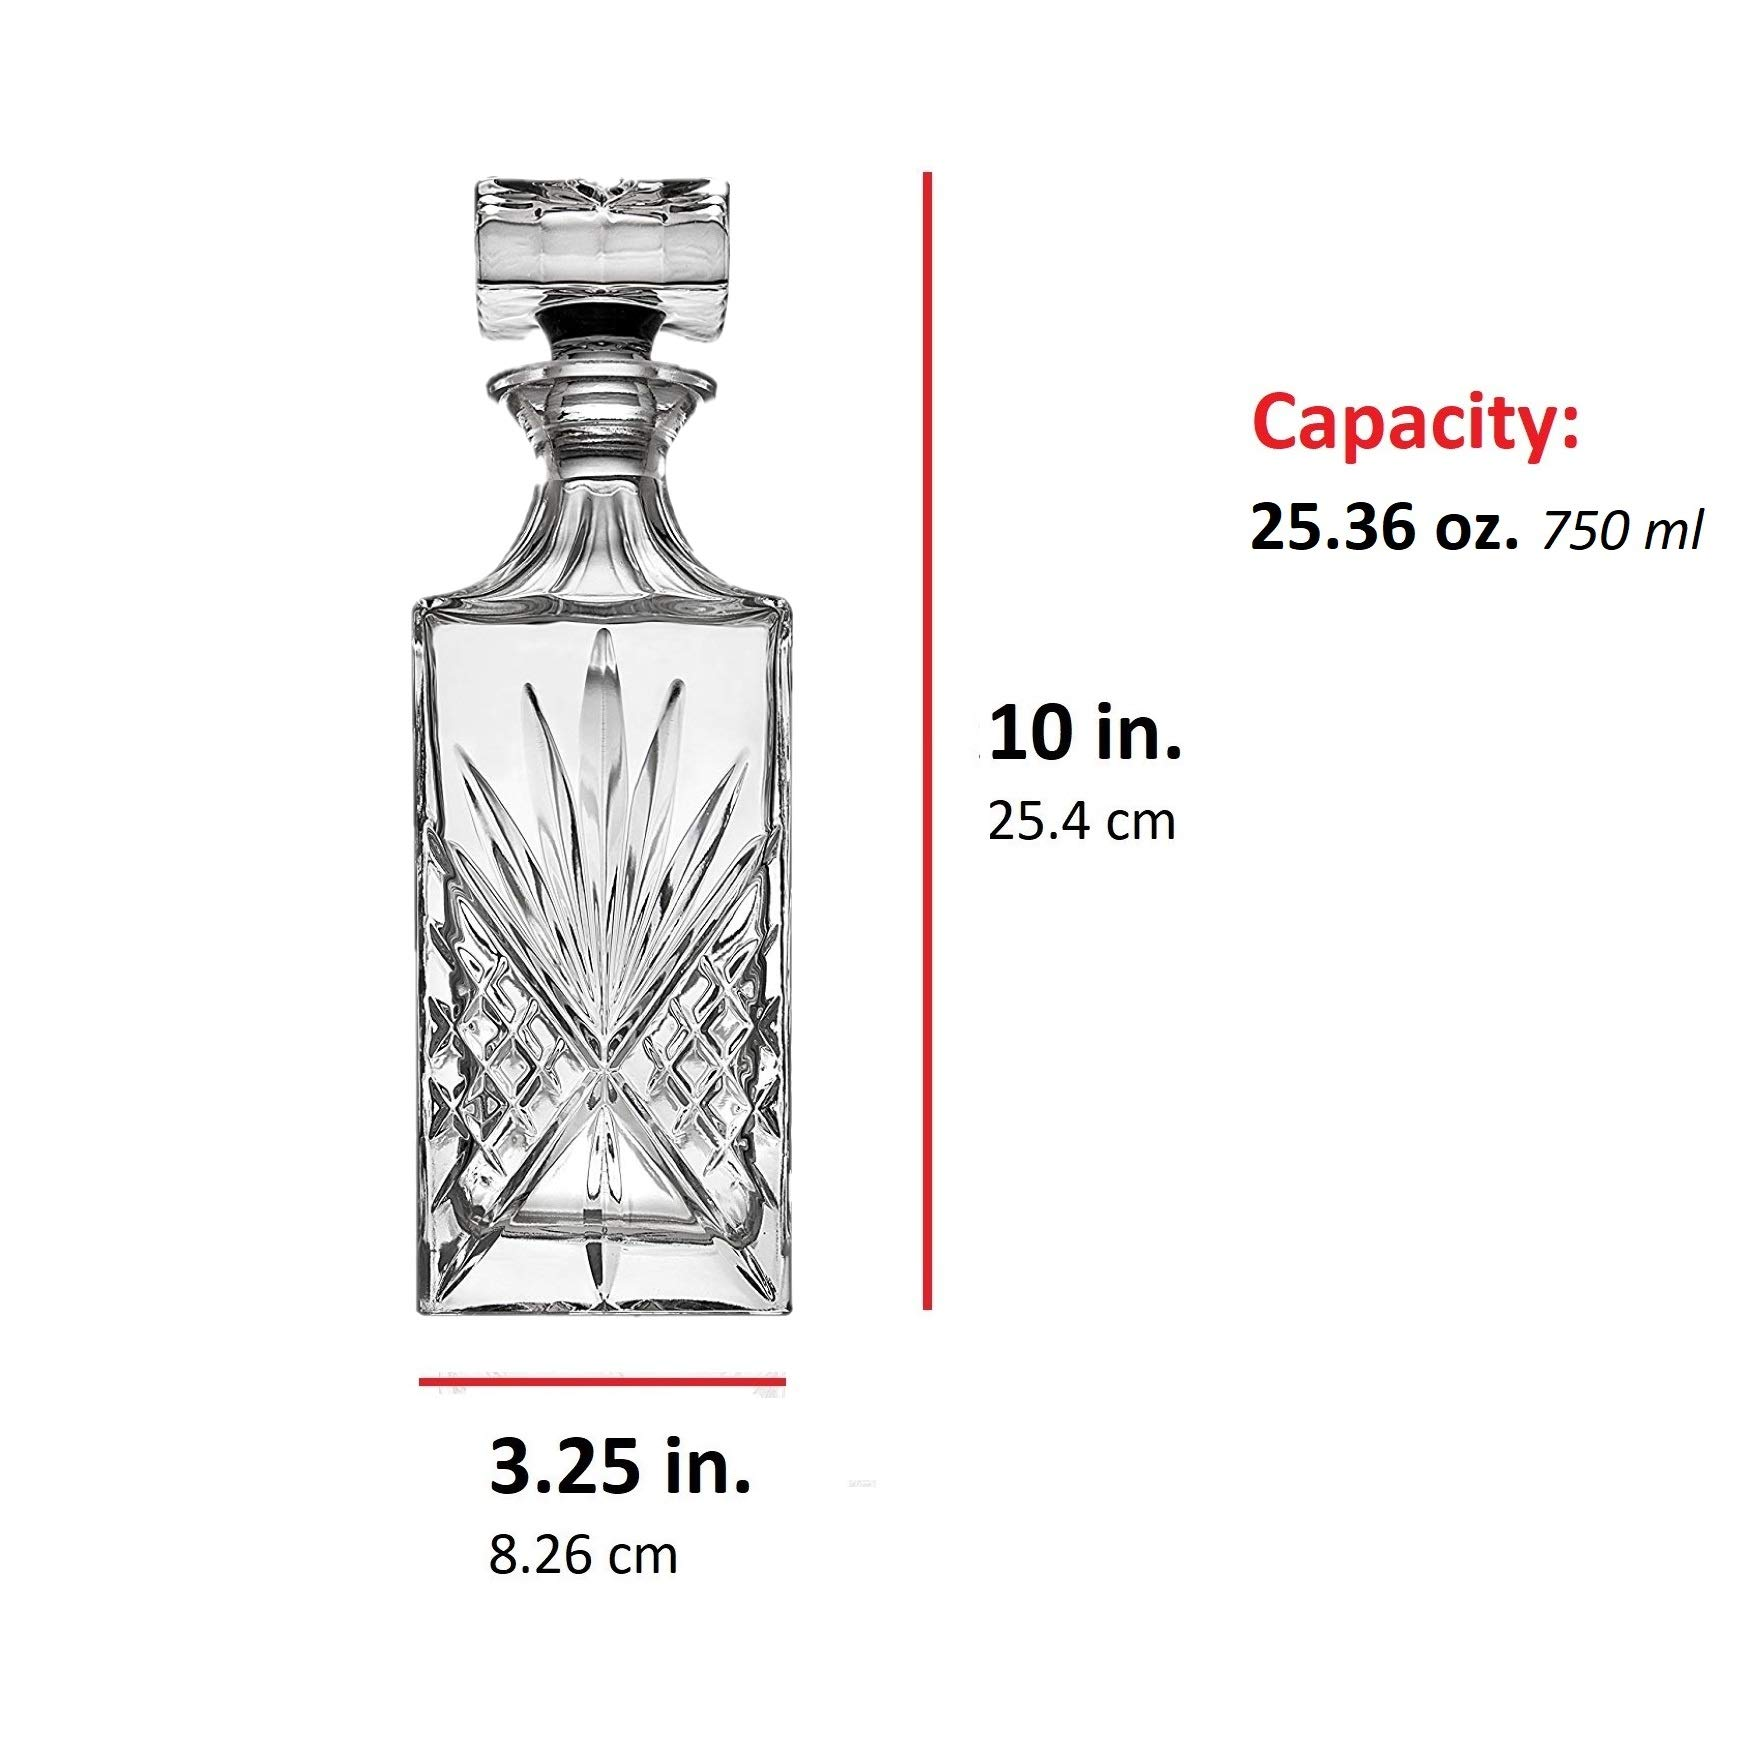 Crystal Decanter for Liquor, Whiskey, and Bourbon - 25 Oz. Lead Free | Irish Cut design | Packaged in a Beautiful Gift Box by James Scott